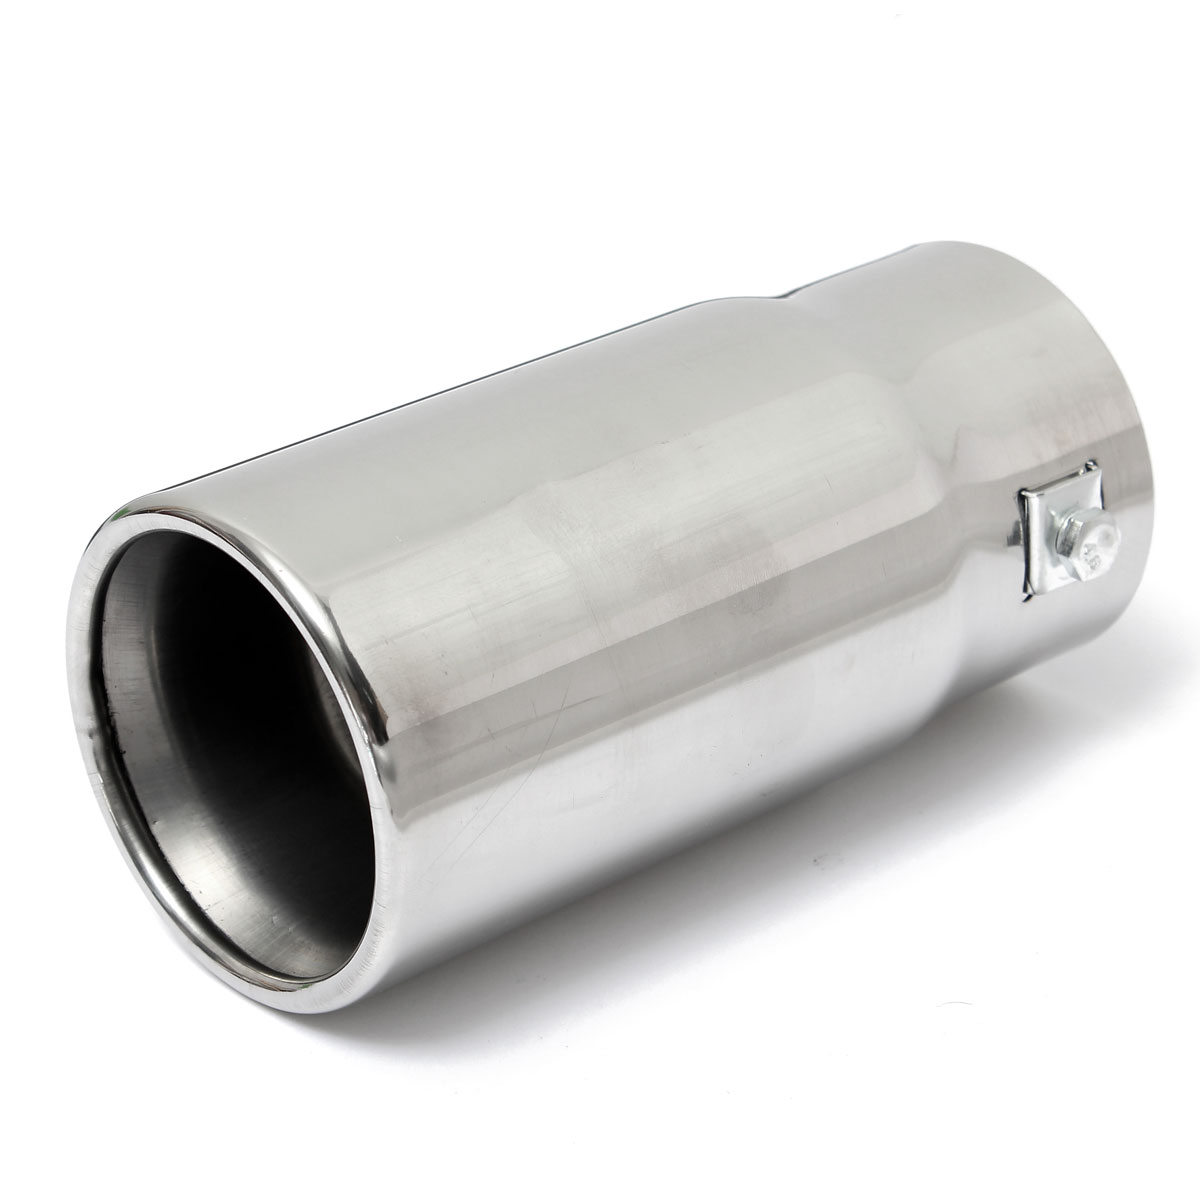 Round universal fits car stainless steel exhaust tail pipe